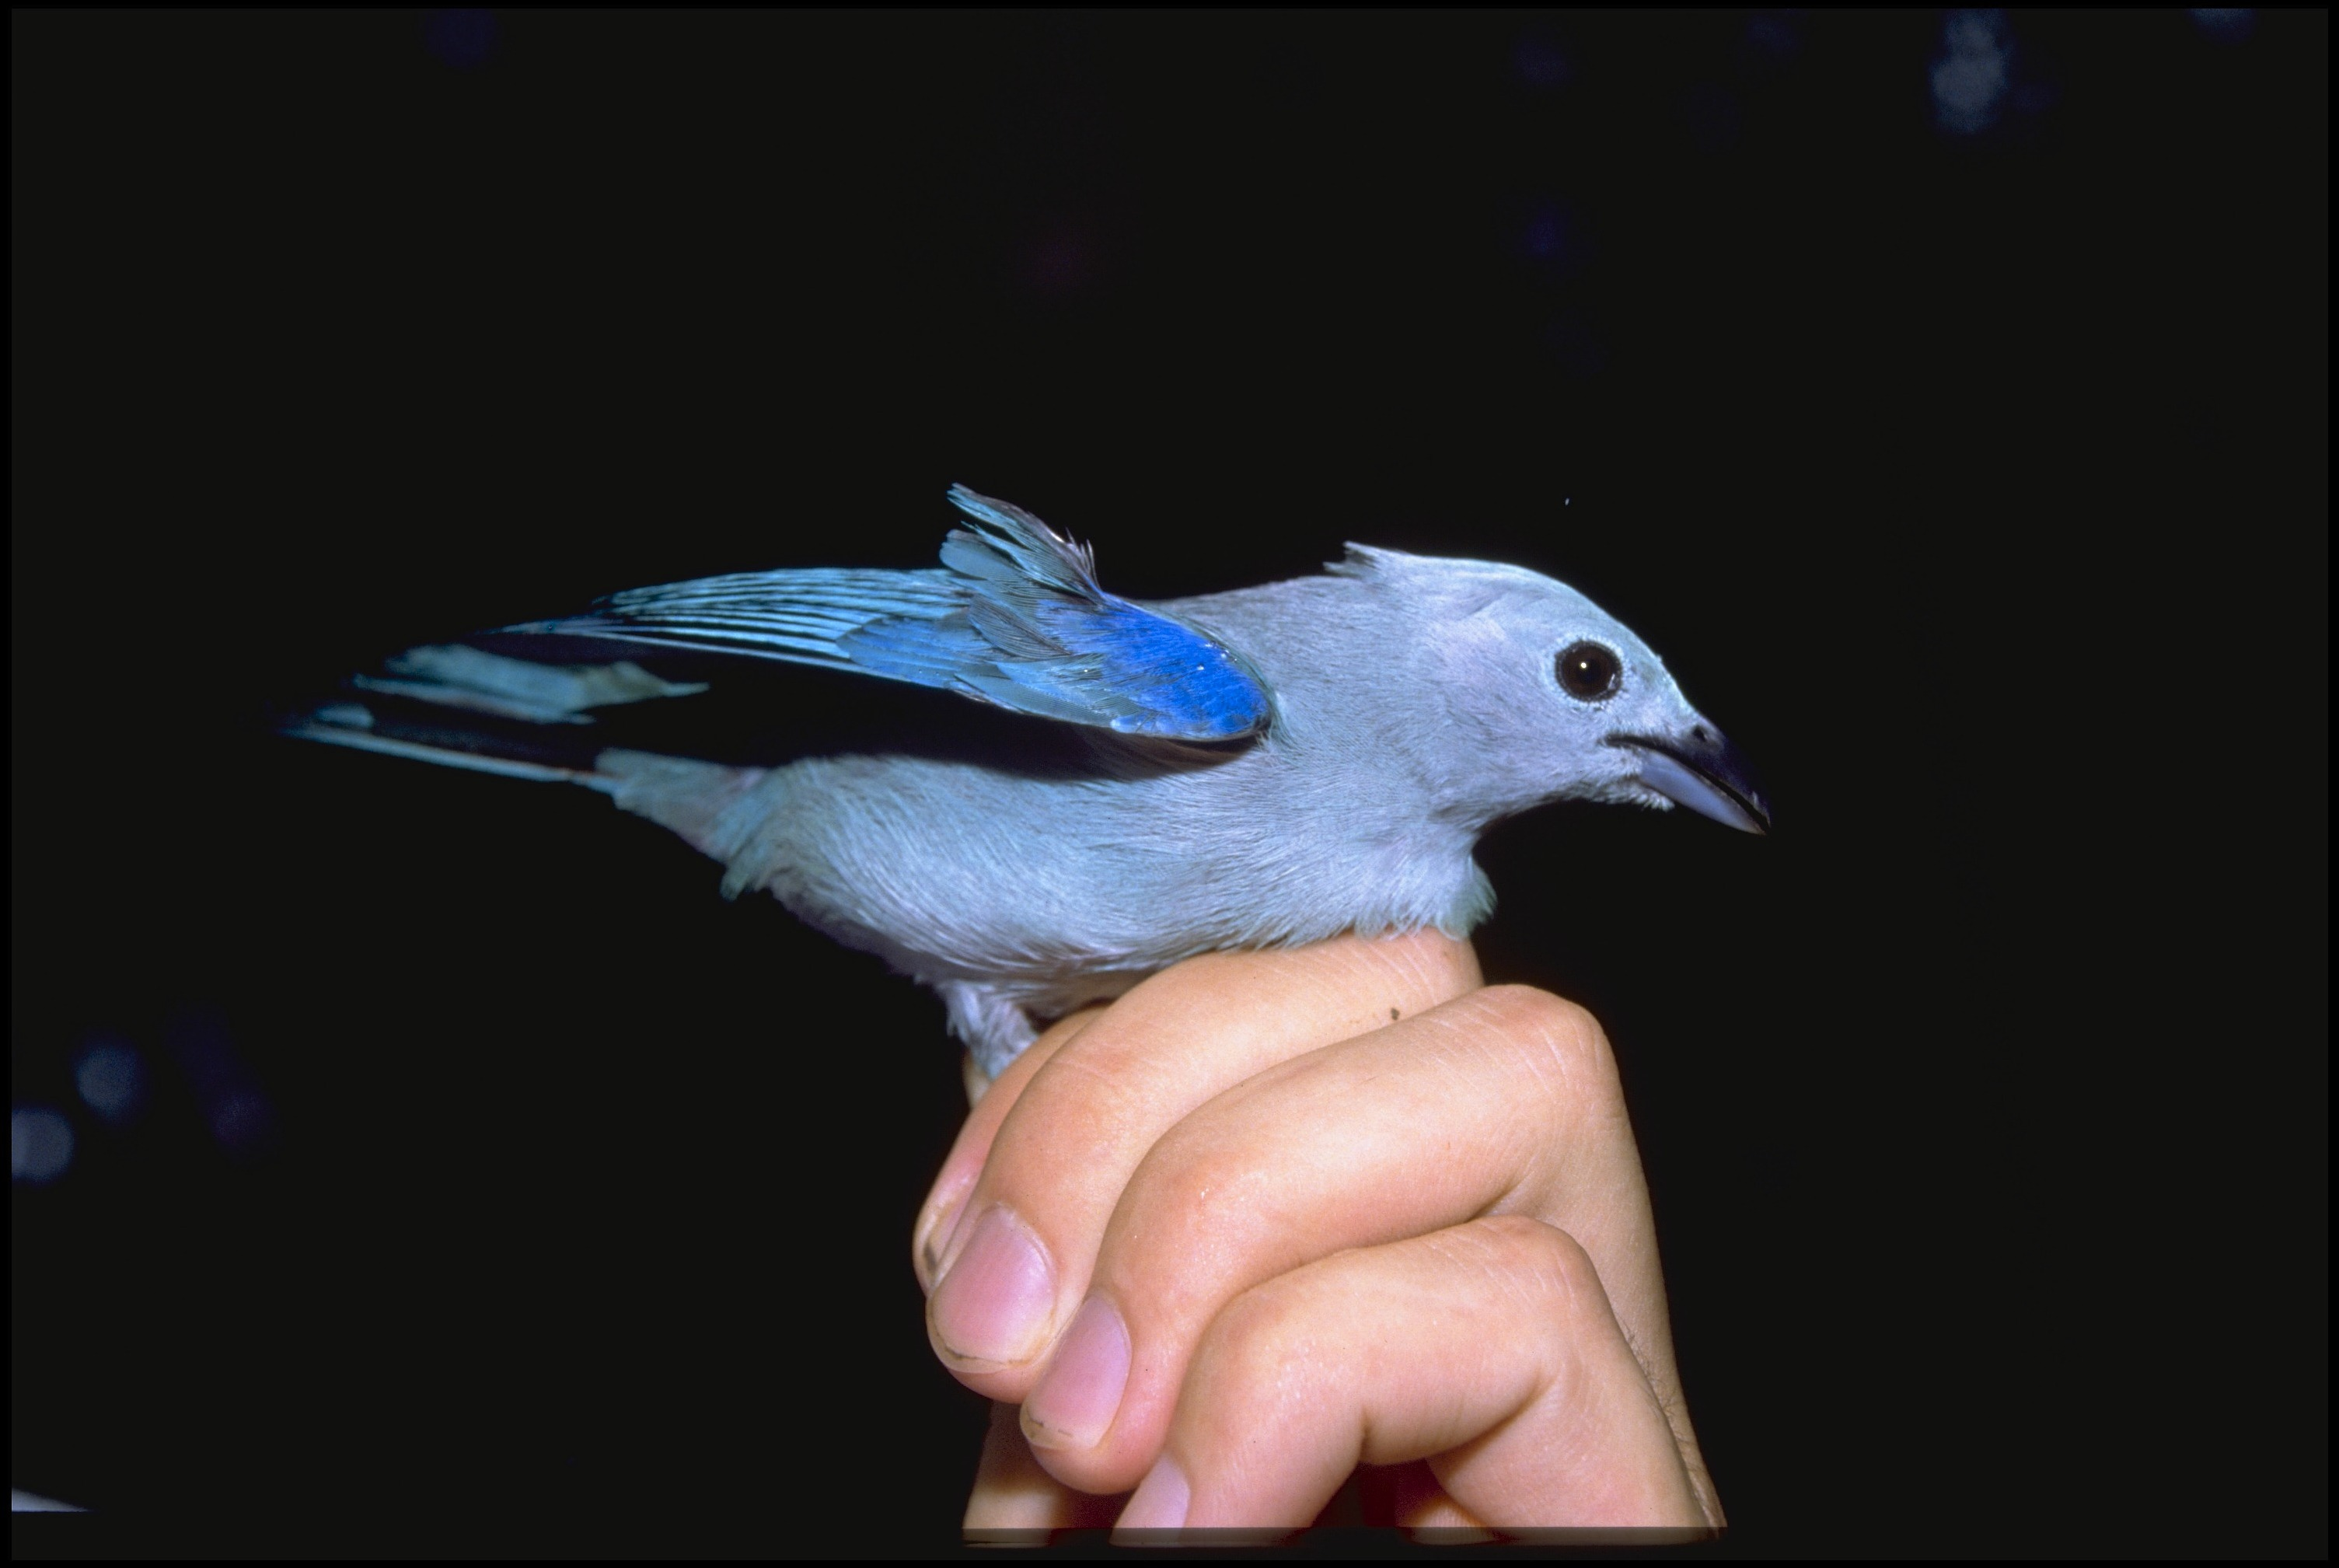 A hand holds the legs of a beautiful blue bird in order to capture a photo.